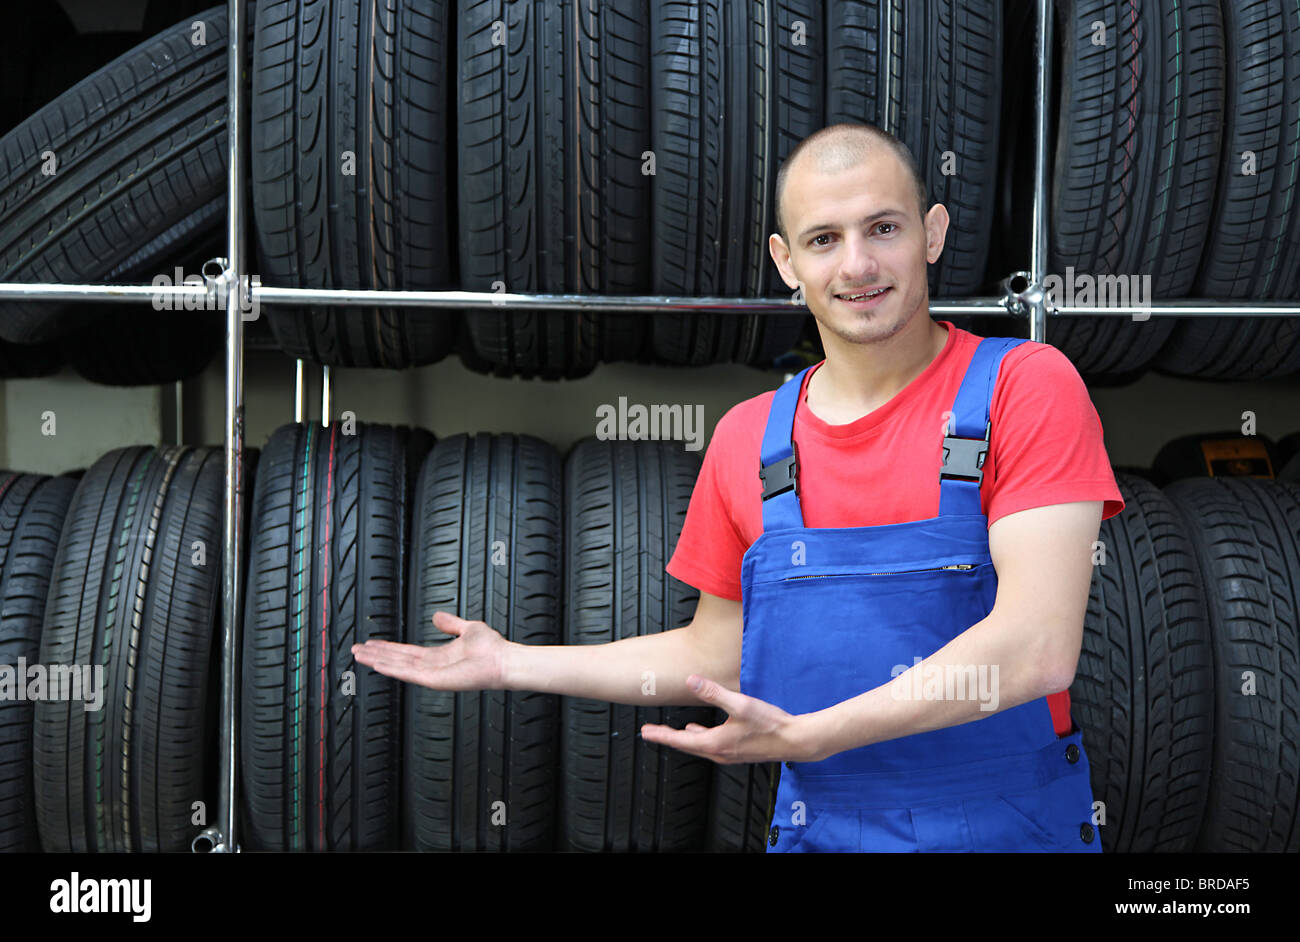 A smiling mechanic in a garage standing next to a rack full of tires and making a positive gesture - Stock Image